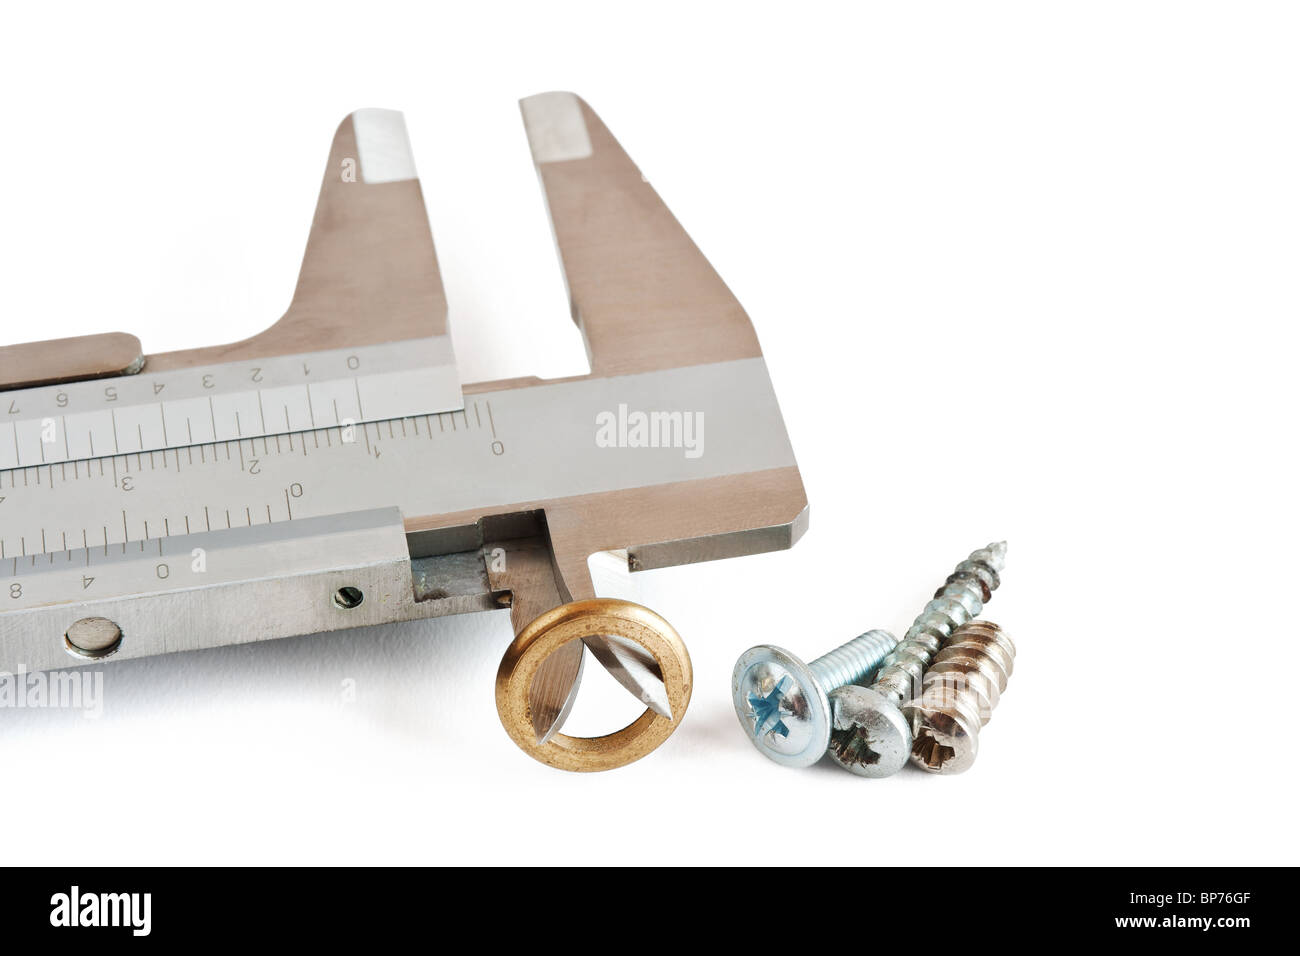 detail of caliper with washer and screws isolated on white background with clipping path - Stock Image